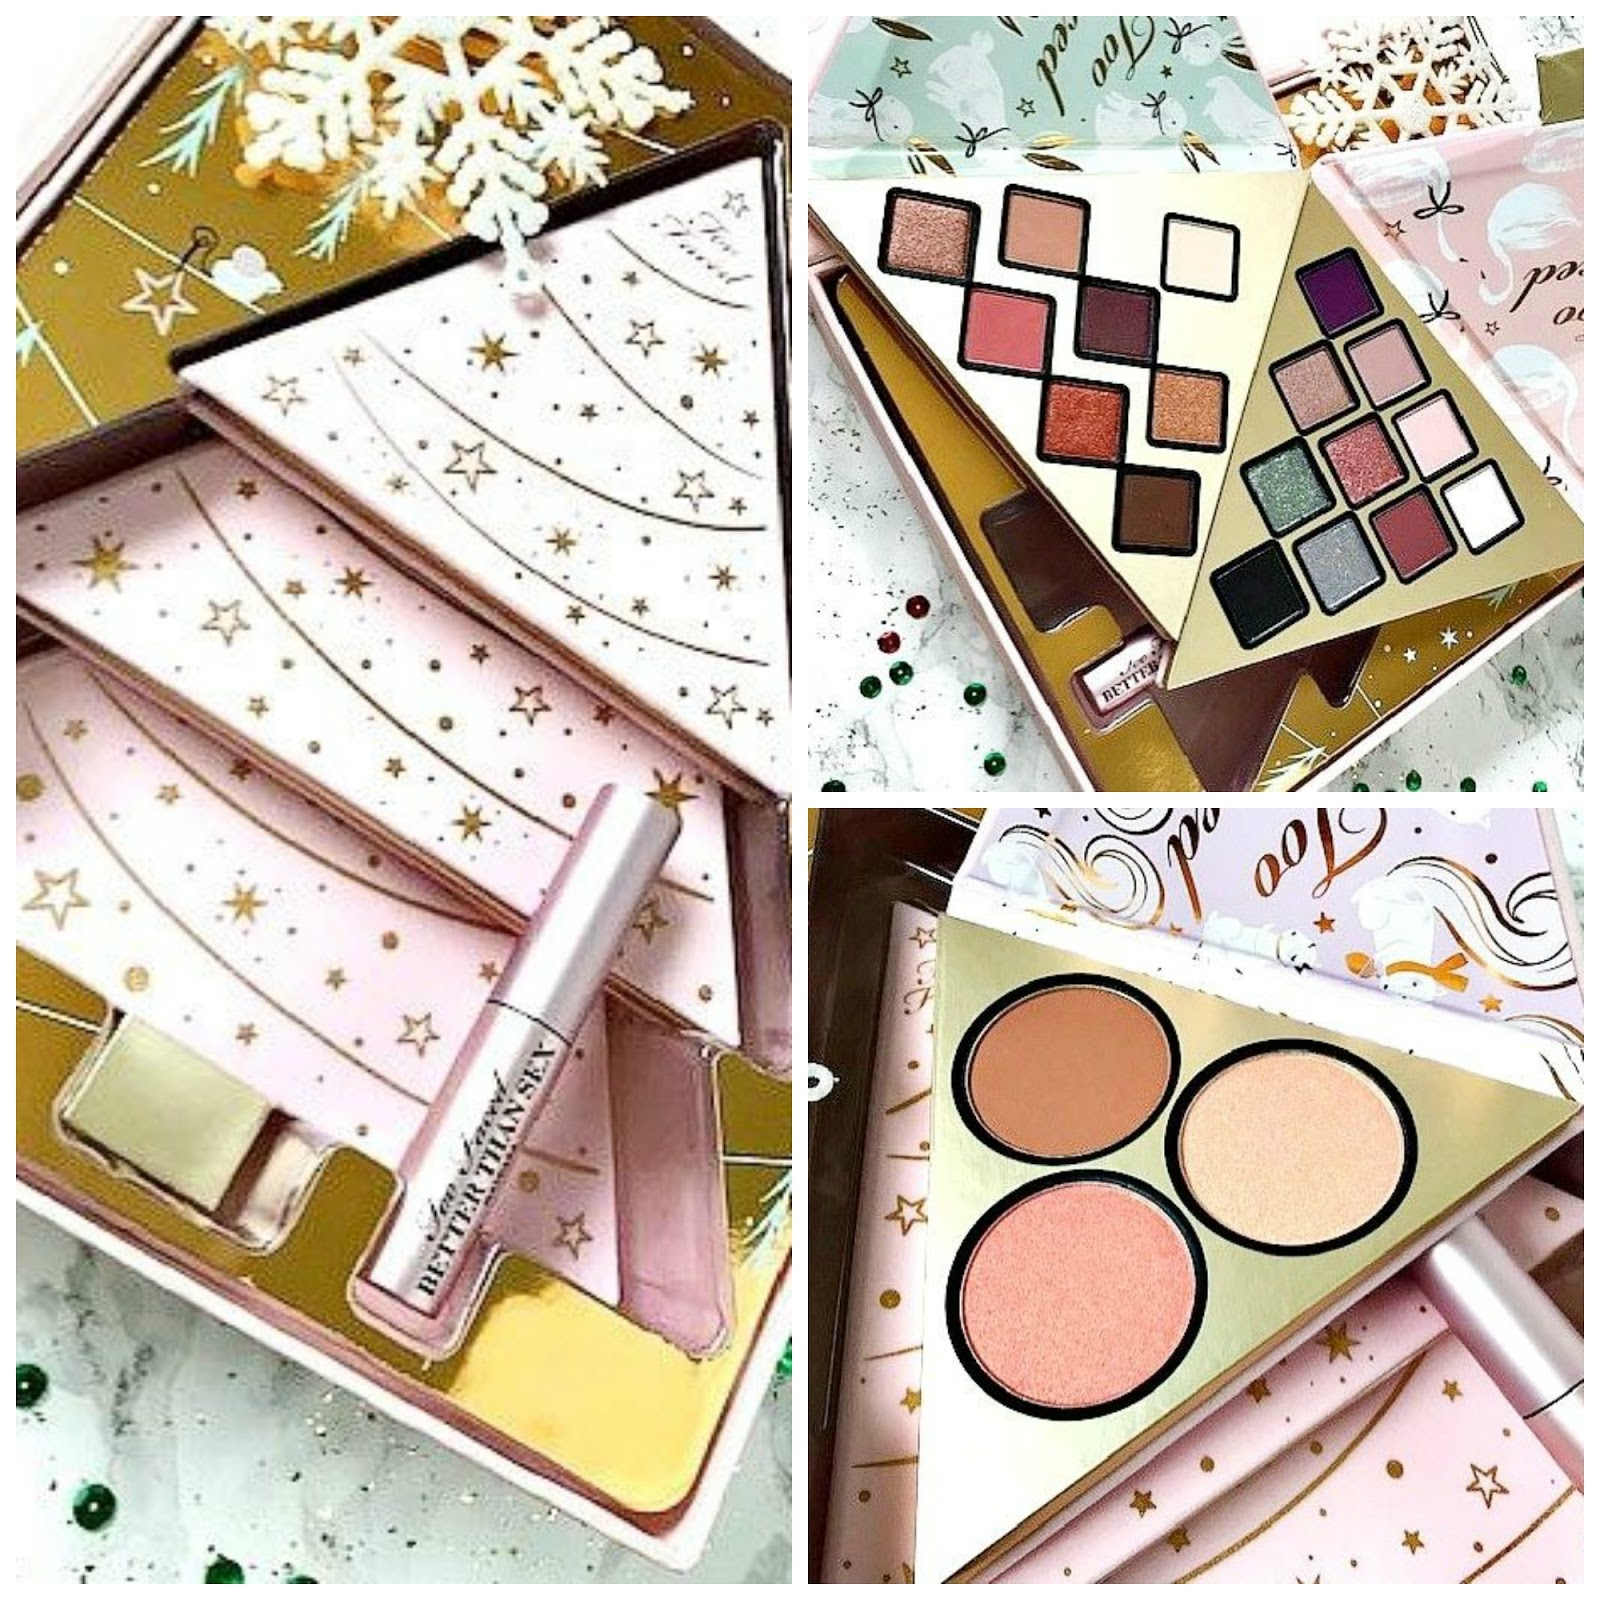 Too Faced Under the Christmas Tree Gift Set Review, Too Faced Under the Christmas Tree Gift Set Giveaway